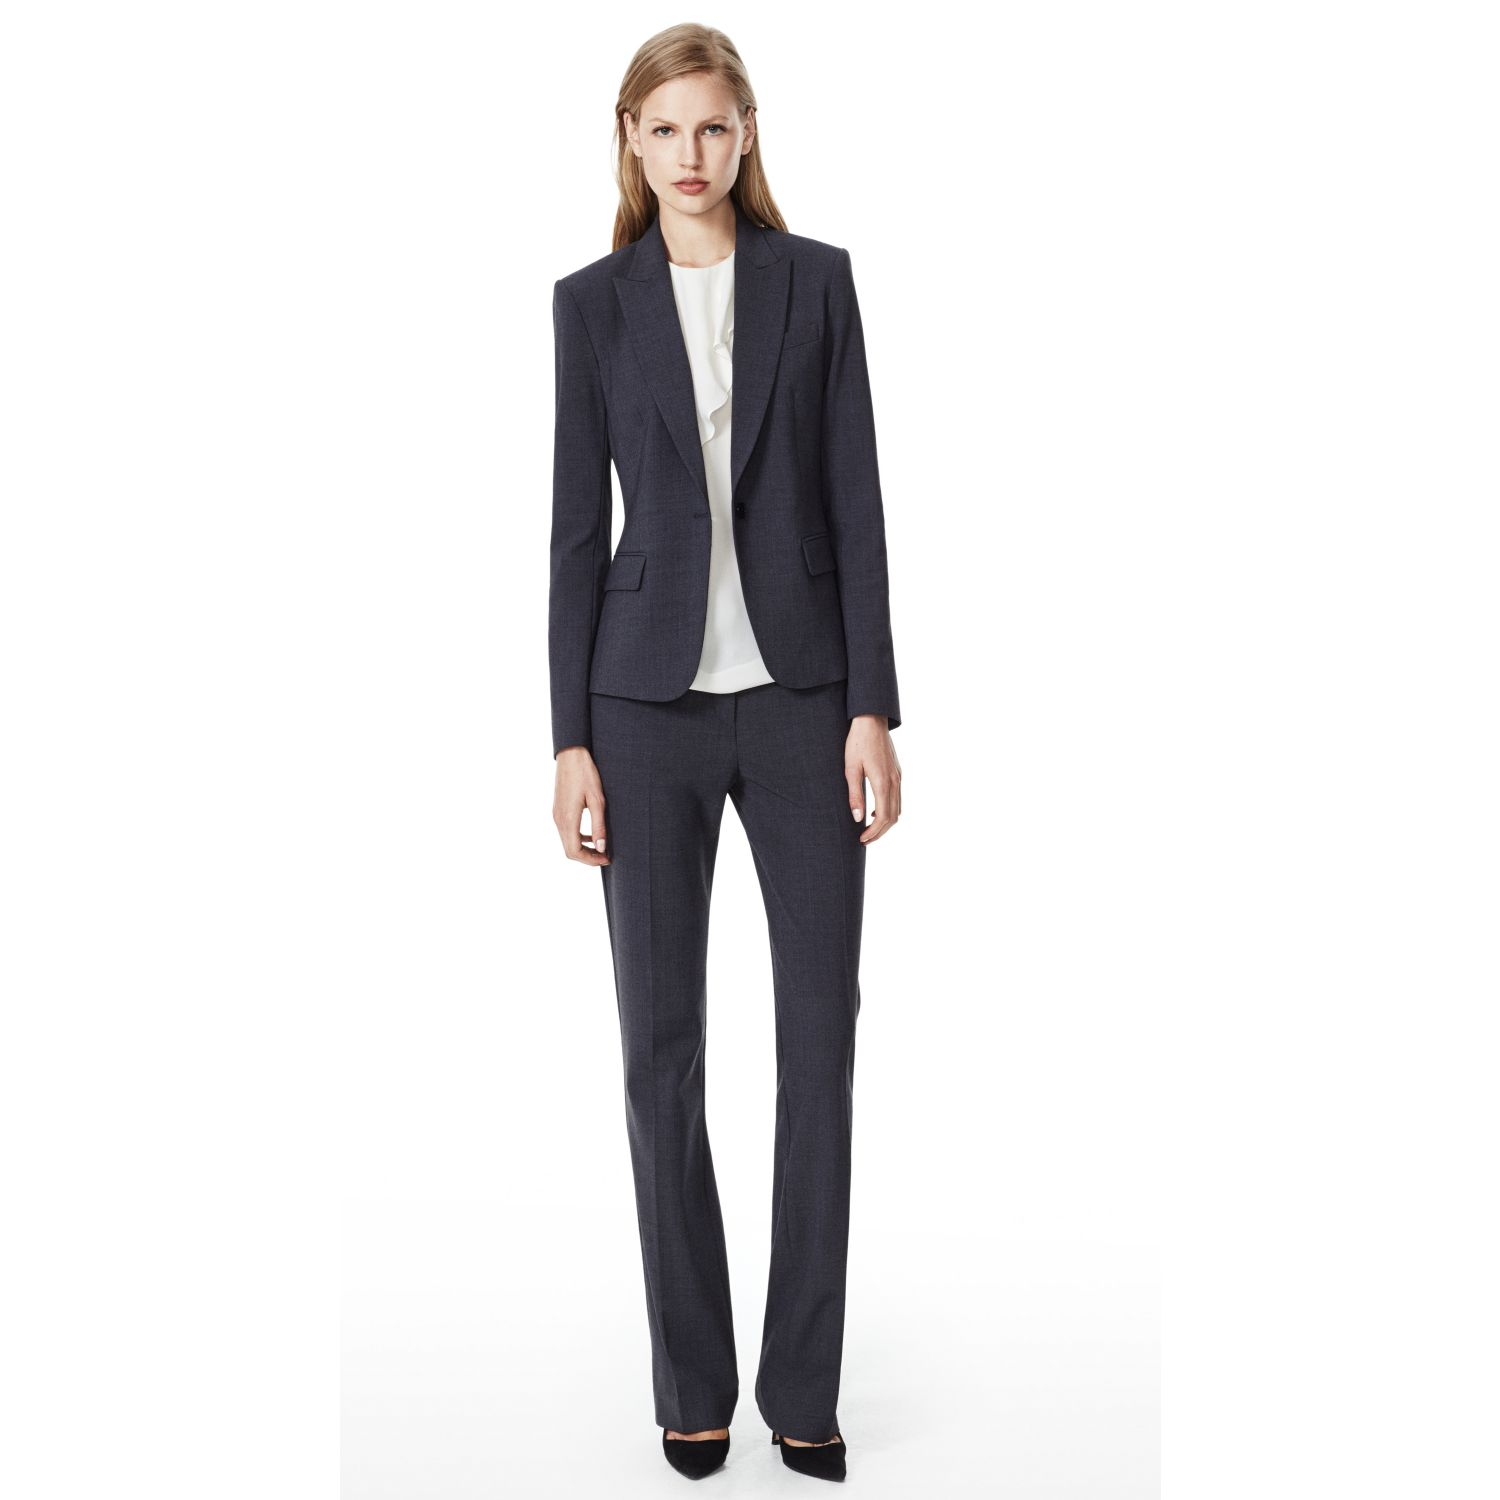 theory gabe b 2 blazer in urban stretch wool in gray lyst gallery